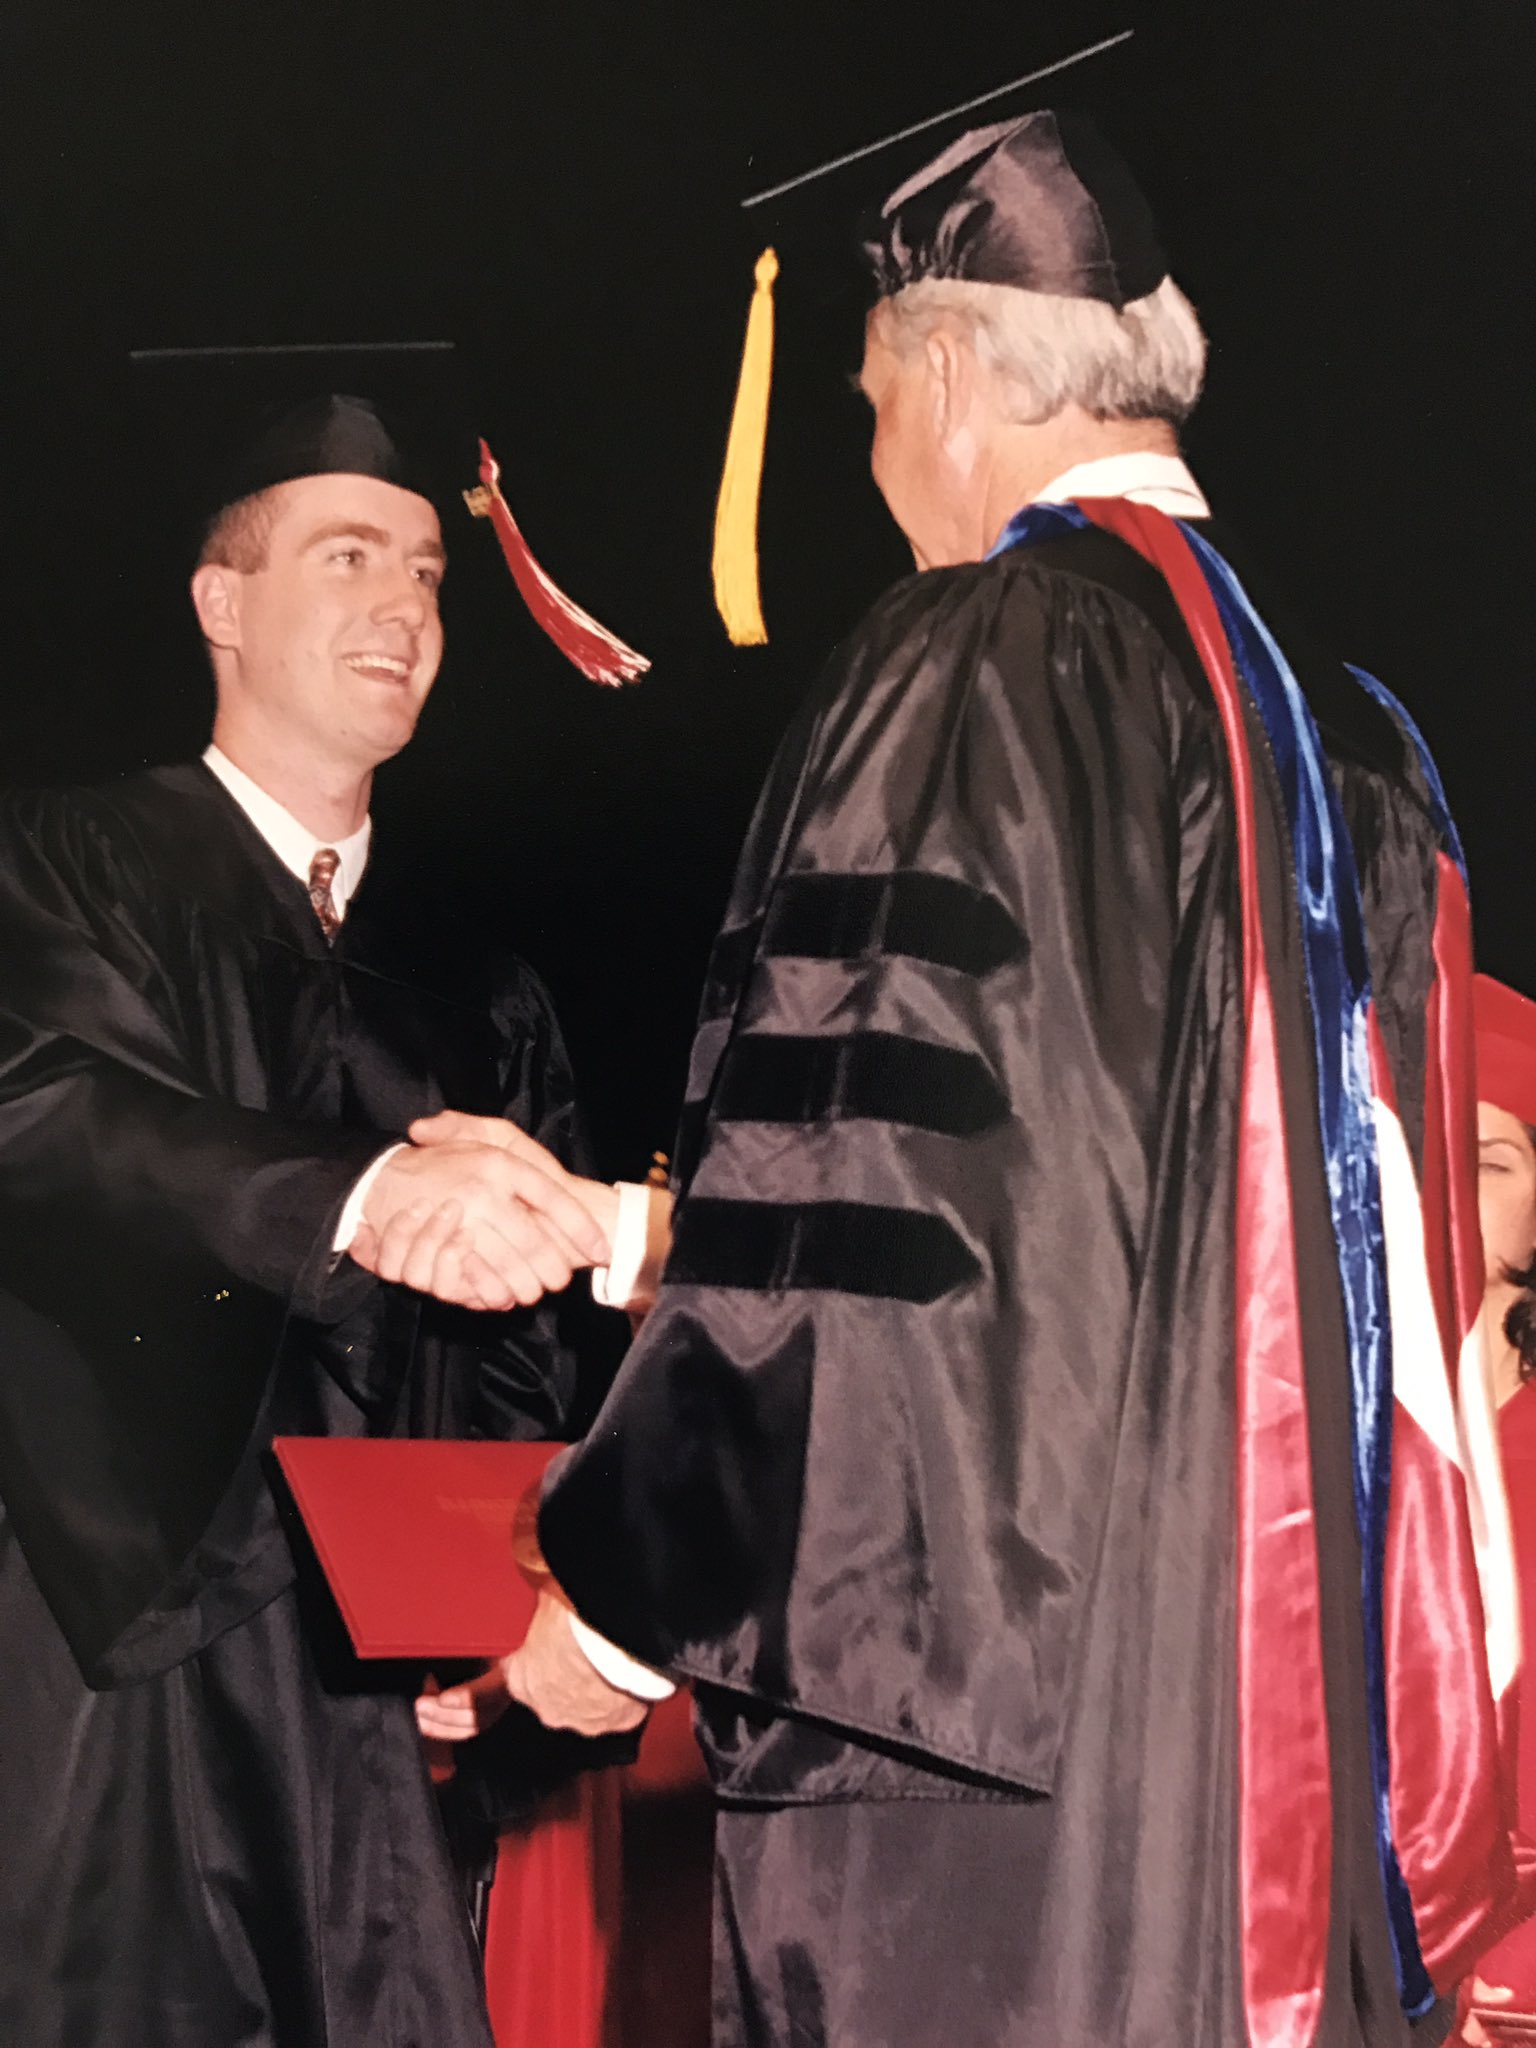 Throw back to my most proud day as an Illinois State Redbird! Loved my time at ISU and grateful for all the great professors. #redbirdsetgo https://t.co/KR3Z6ig2FX